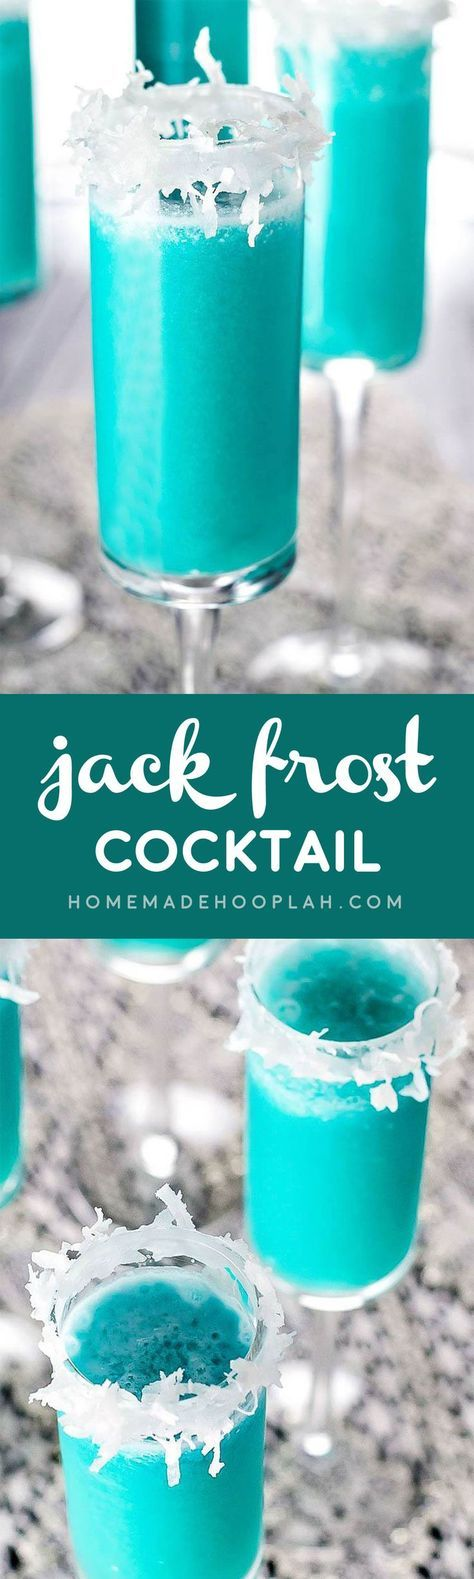 Jack Frost Cocktail! Winter's version of the piña colada! Blue curacao and shredded coconut help give this drink it's wintry flair. | http://HomemadeHooplah.com